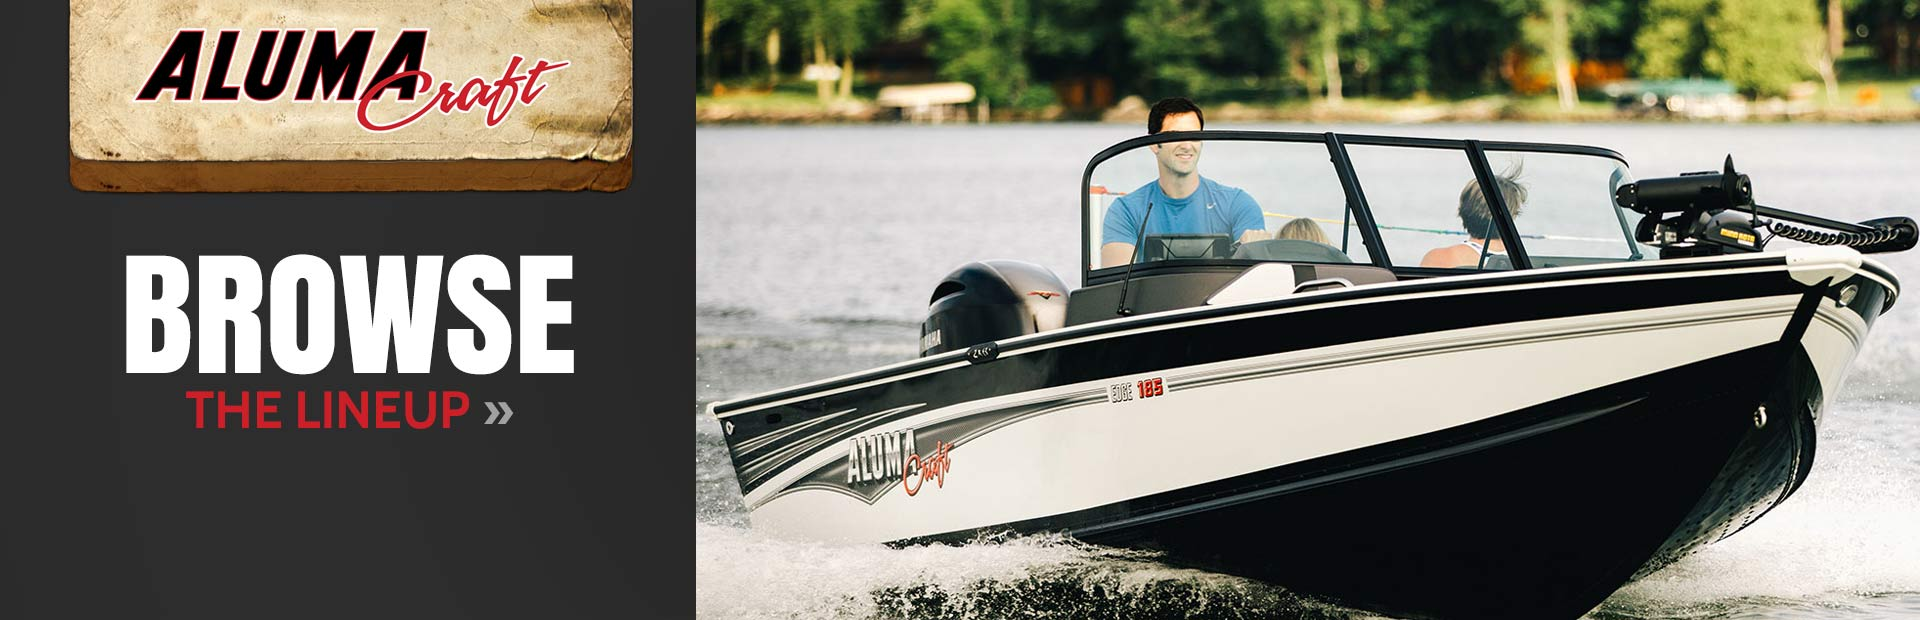 Click here to browse the Alumacraft boat lineup.